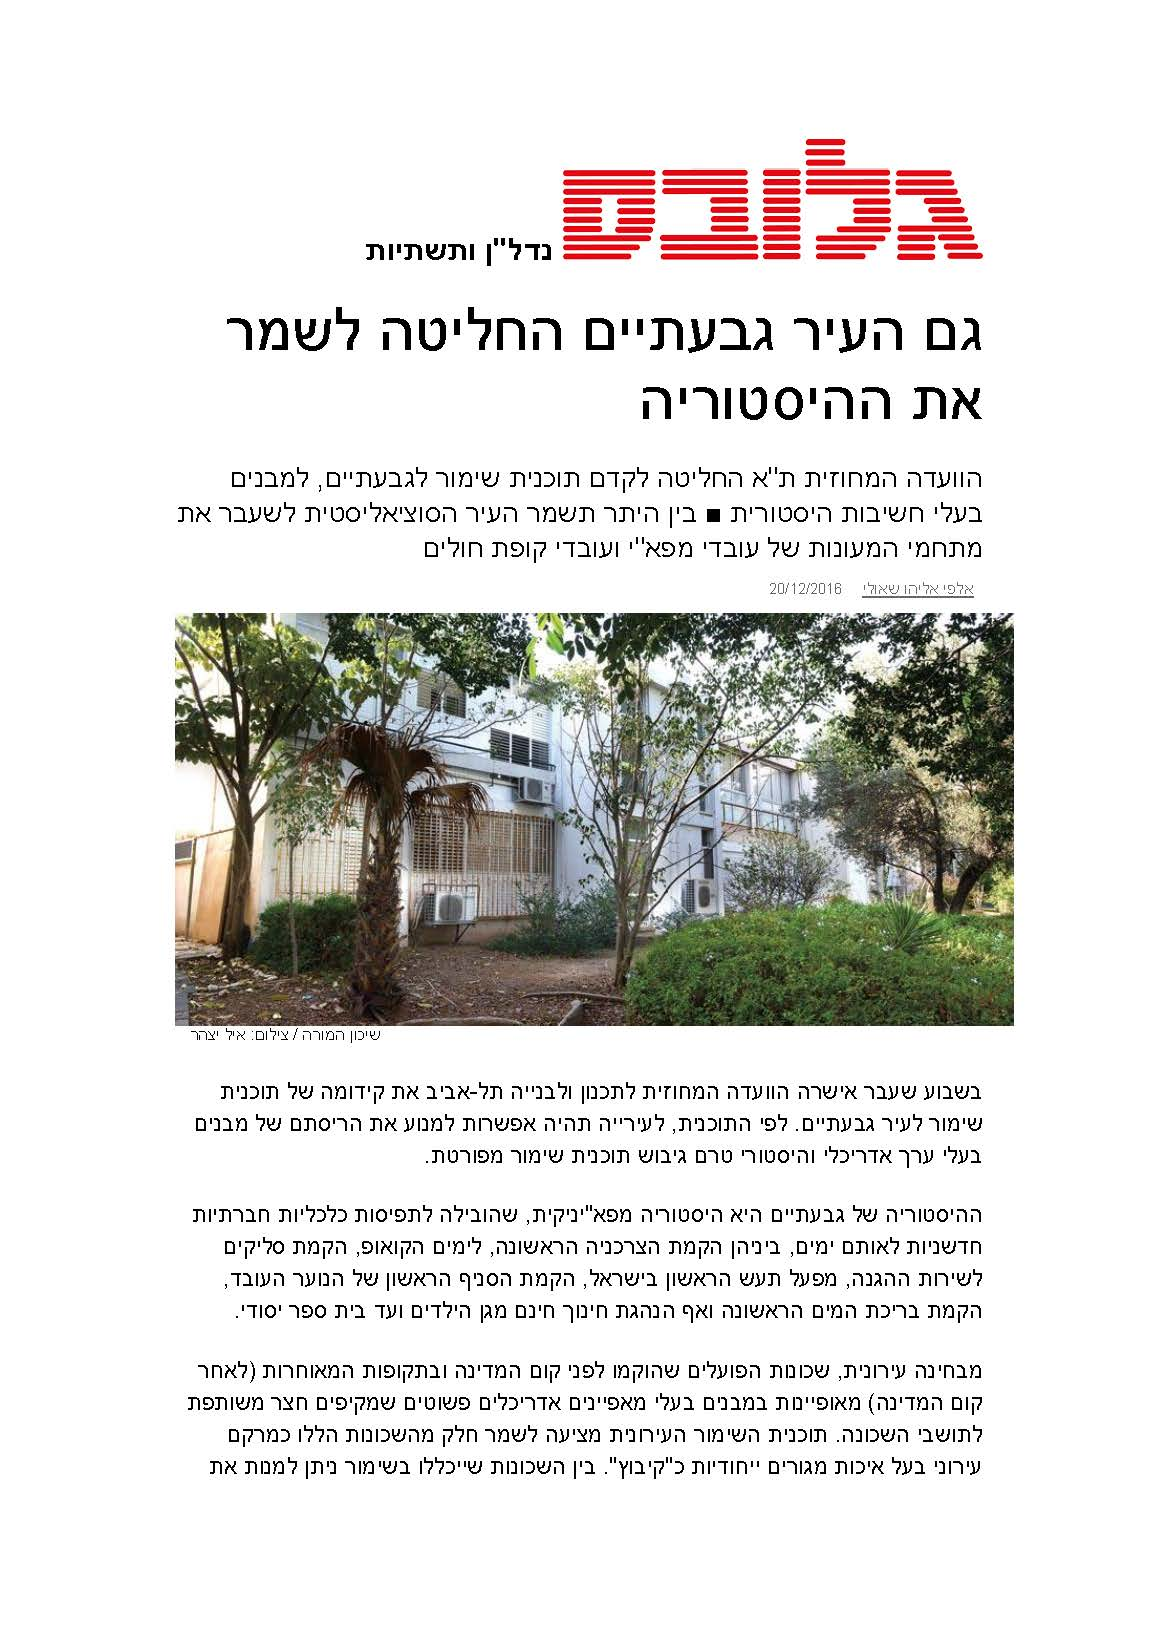 The city of Givatayim decided to preserve its historic legacy